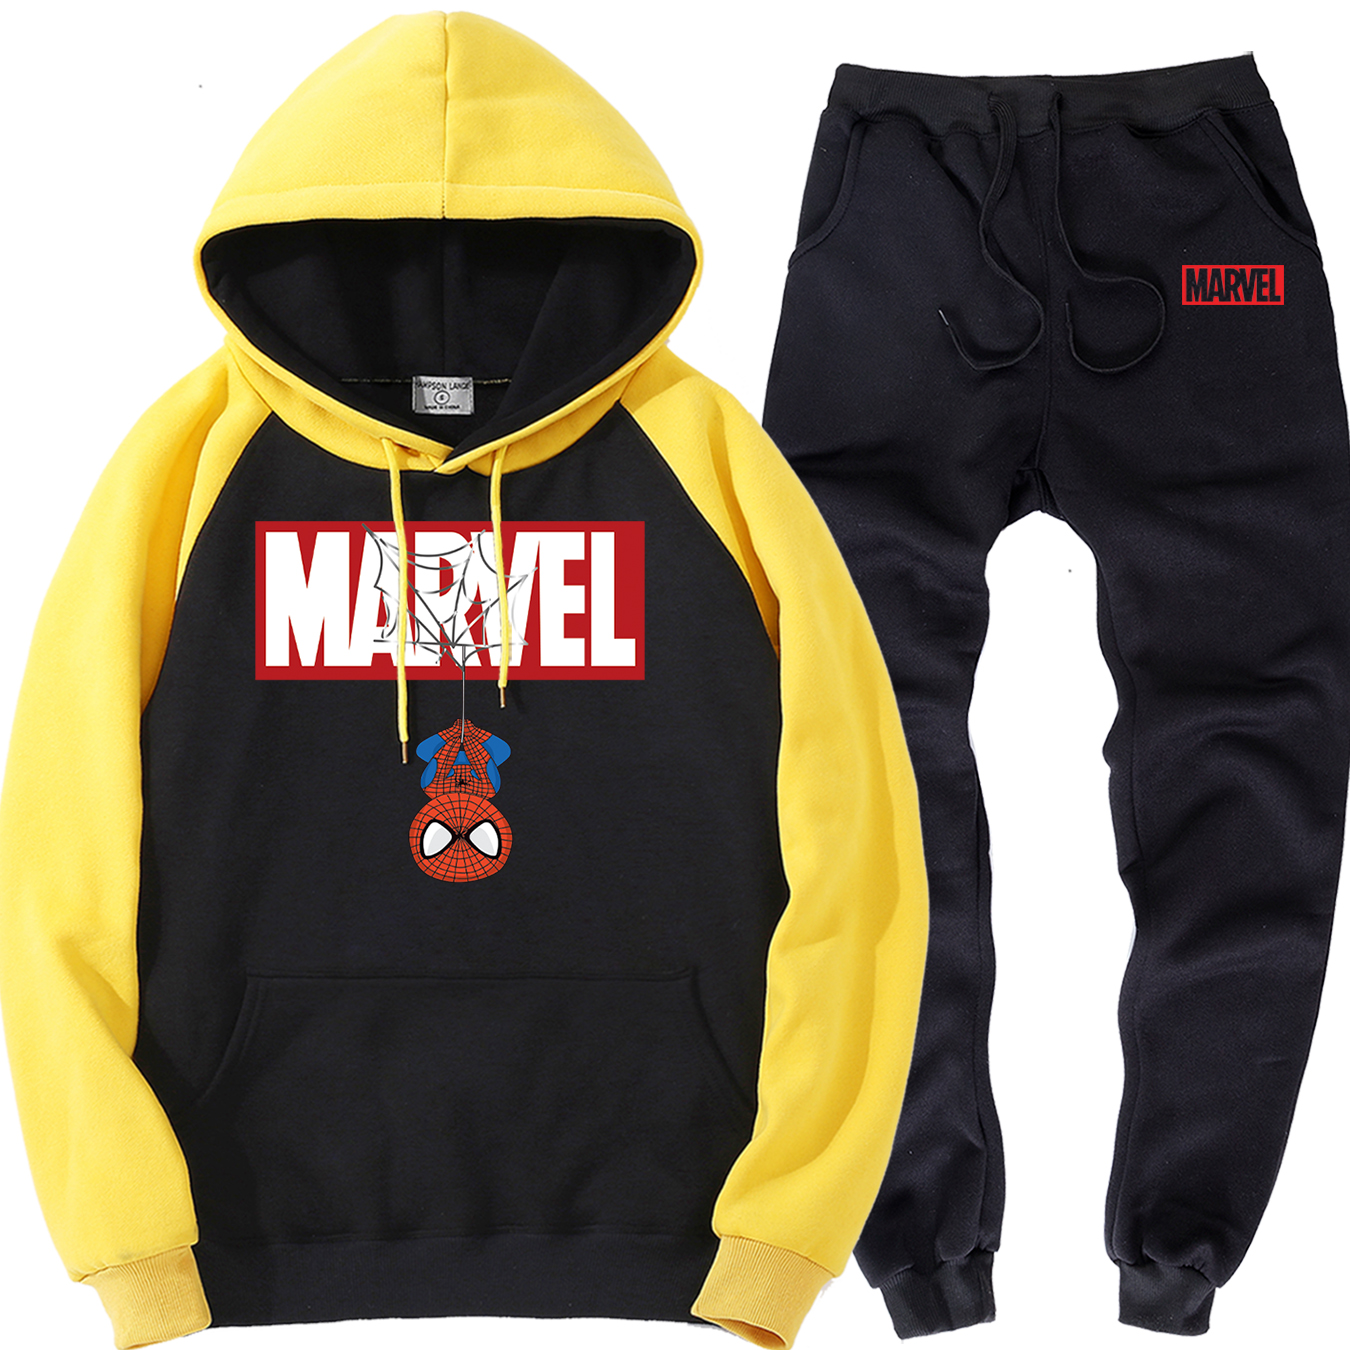 Spiderman Mens Track Sets 2019 Autumn Fleece Clothing Suits Marvel Personalized Hoodies Brand Trousers Casual Warm Clothing Men